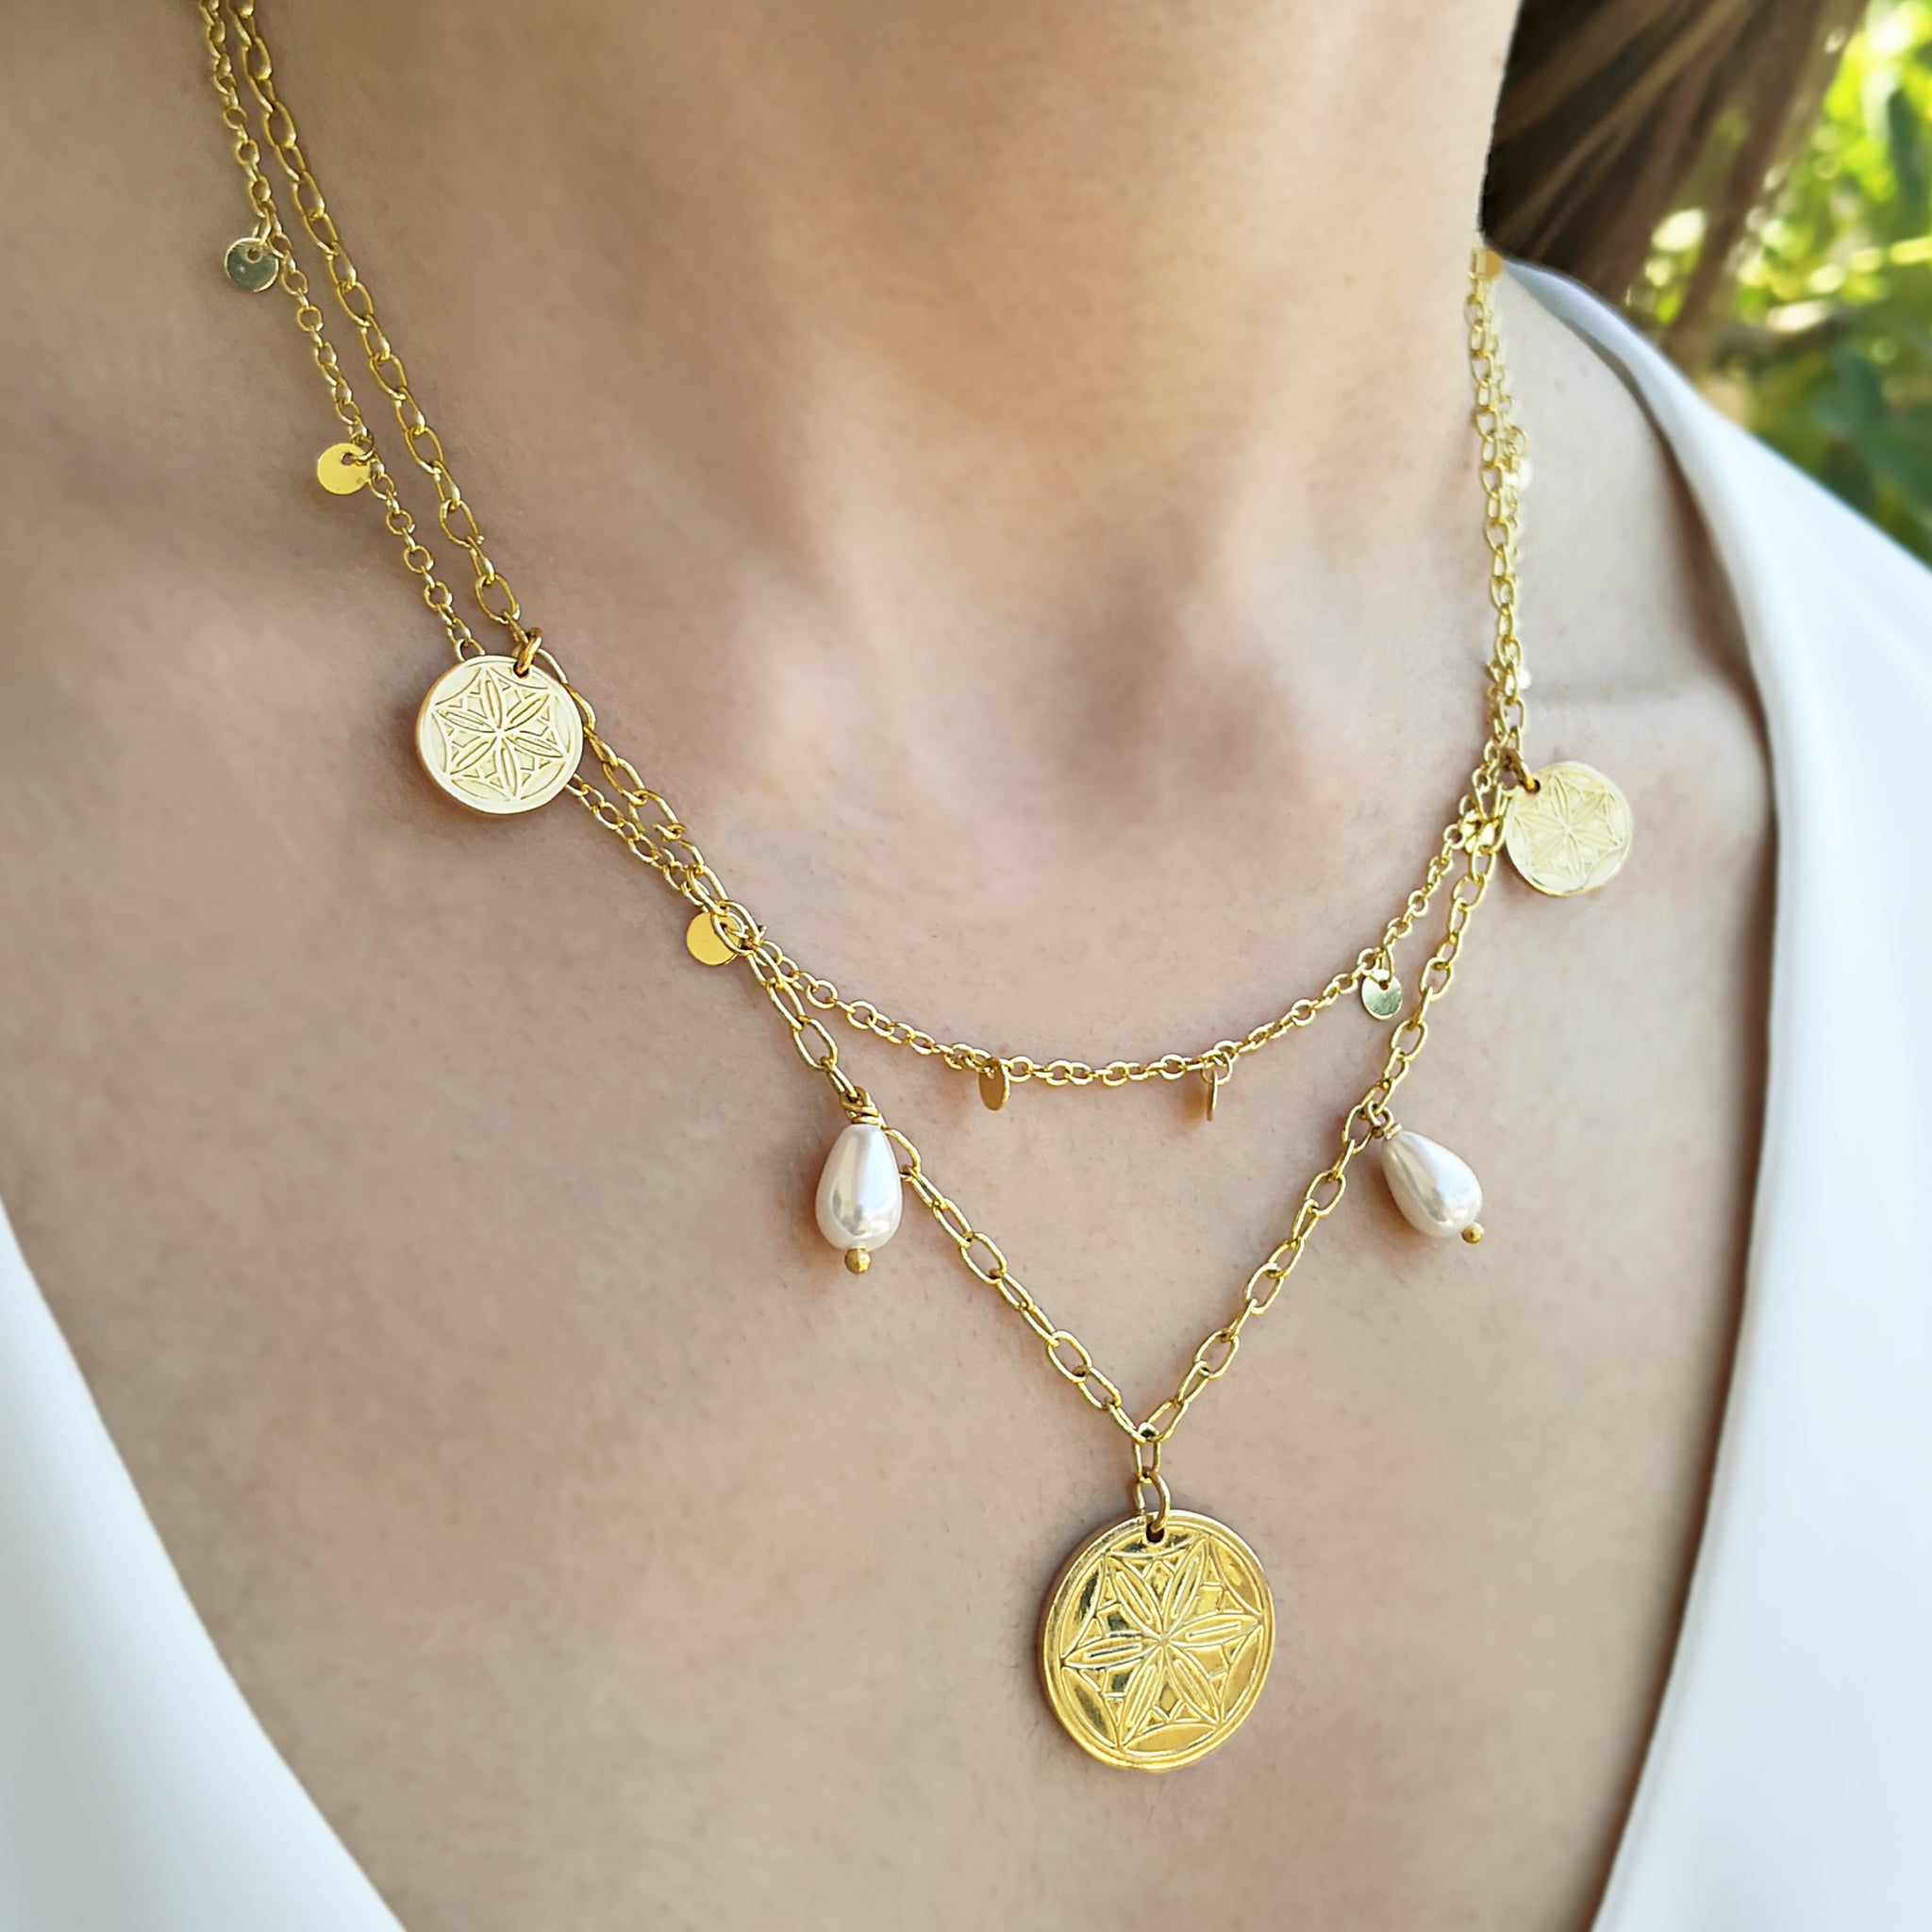 Greek coins & Pearls Necklace in 2 Layers! 24K gold filled